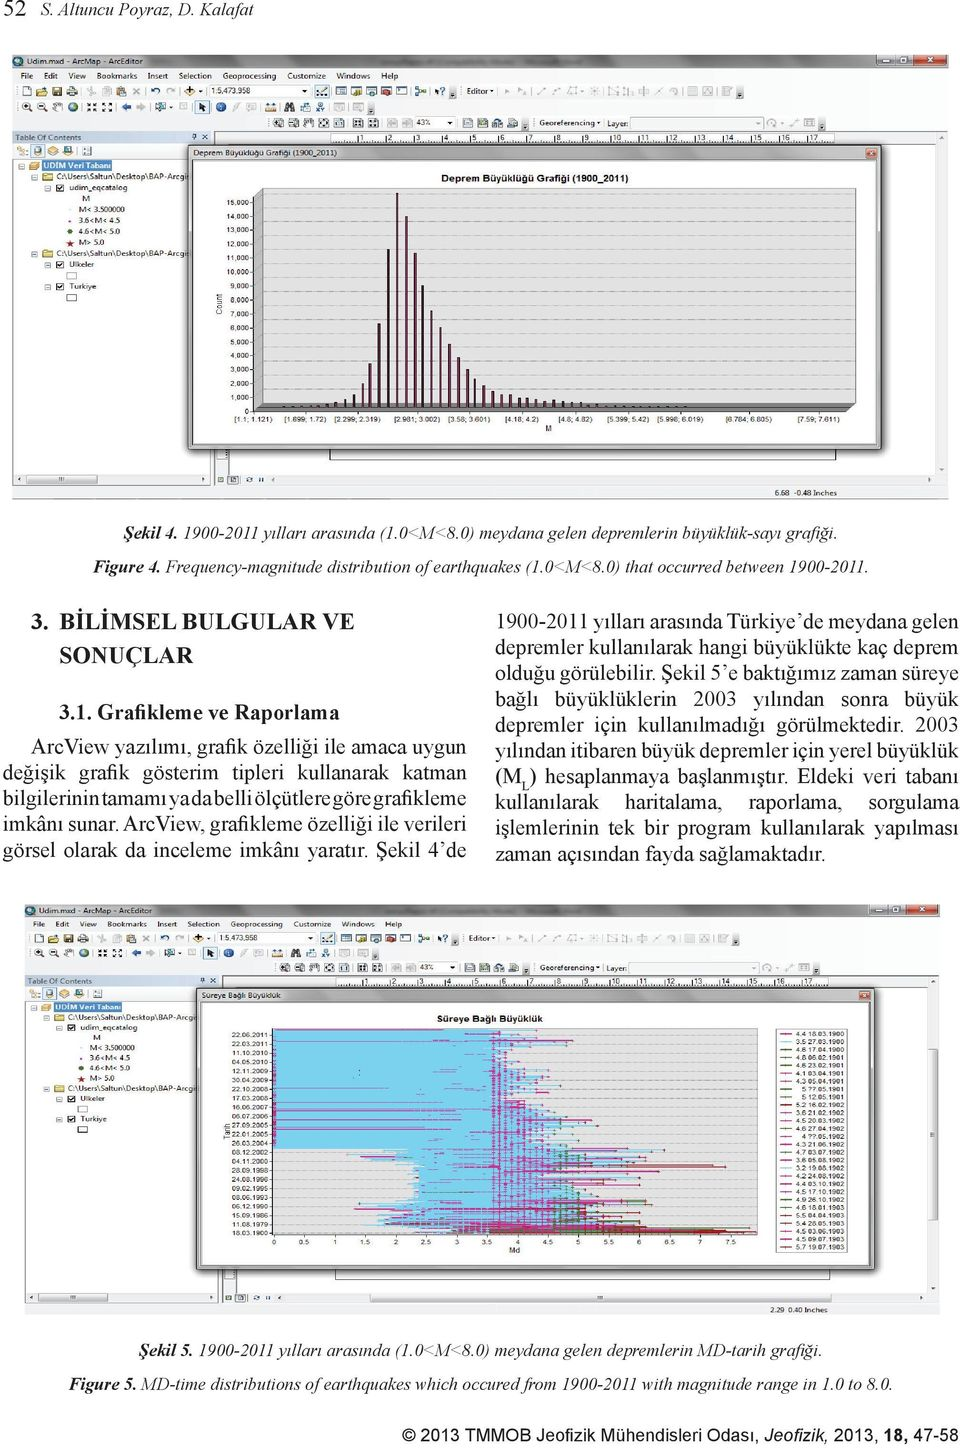 BİLİMSEL BULGULAR VE kullanılarak hangi büyüklükte kaç deprem FigureSONUÇLAR 4. Frequency-magnitude distribution of earthquakesdepremler (1.